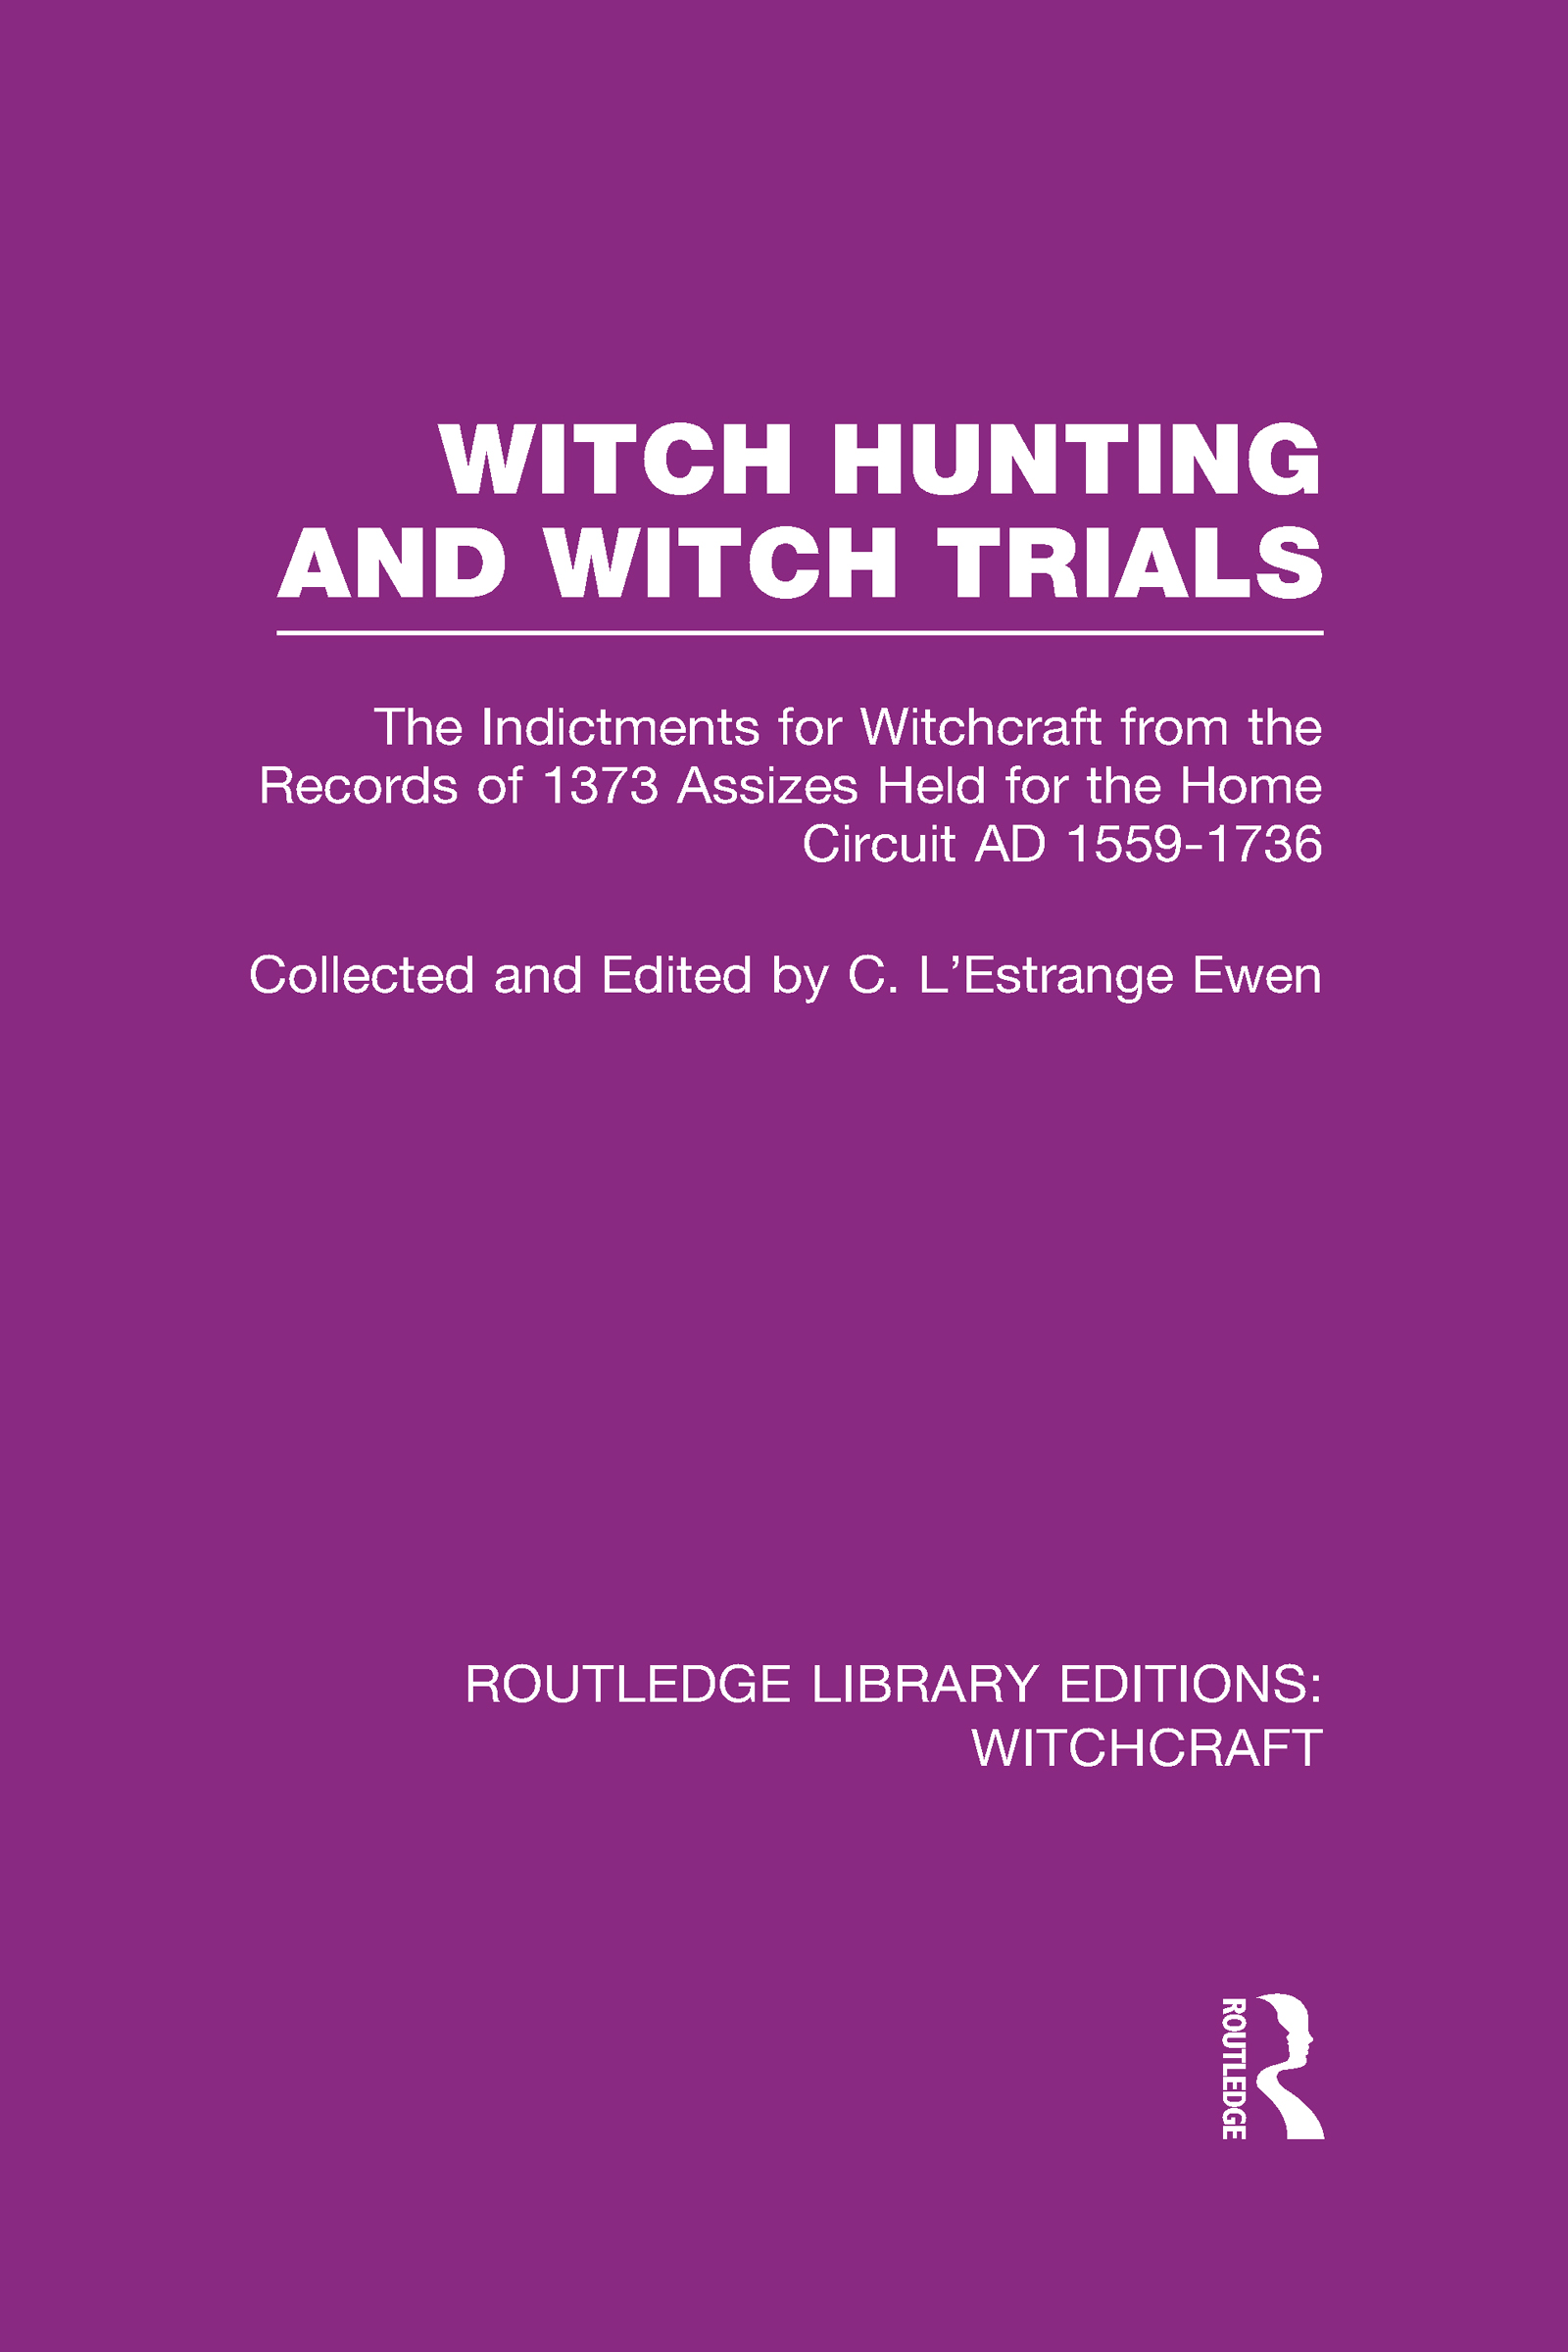 Witch Hunting and Witch Trials (RLE Witchcraft): The Indictments for Witchcraft from the Records of the 1373 Assizes Held from the Home Court 1559-1736 AD book cover